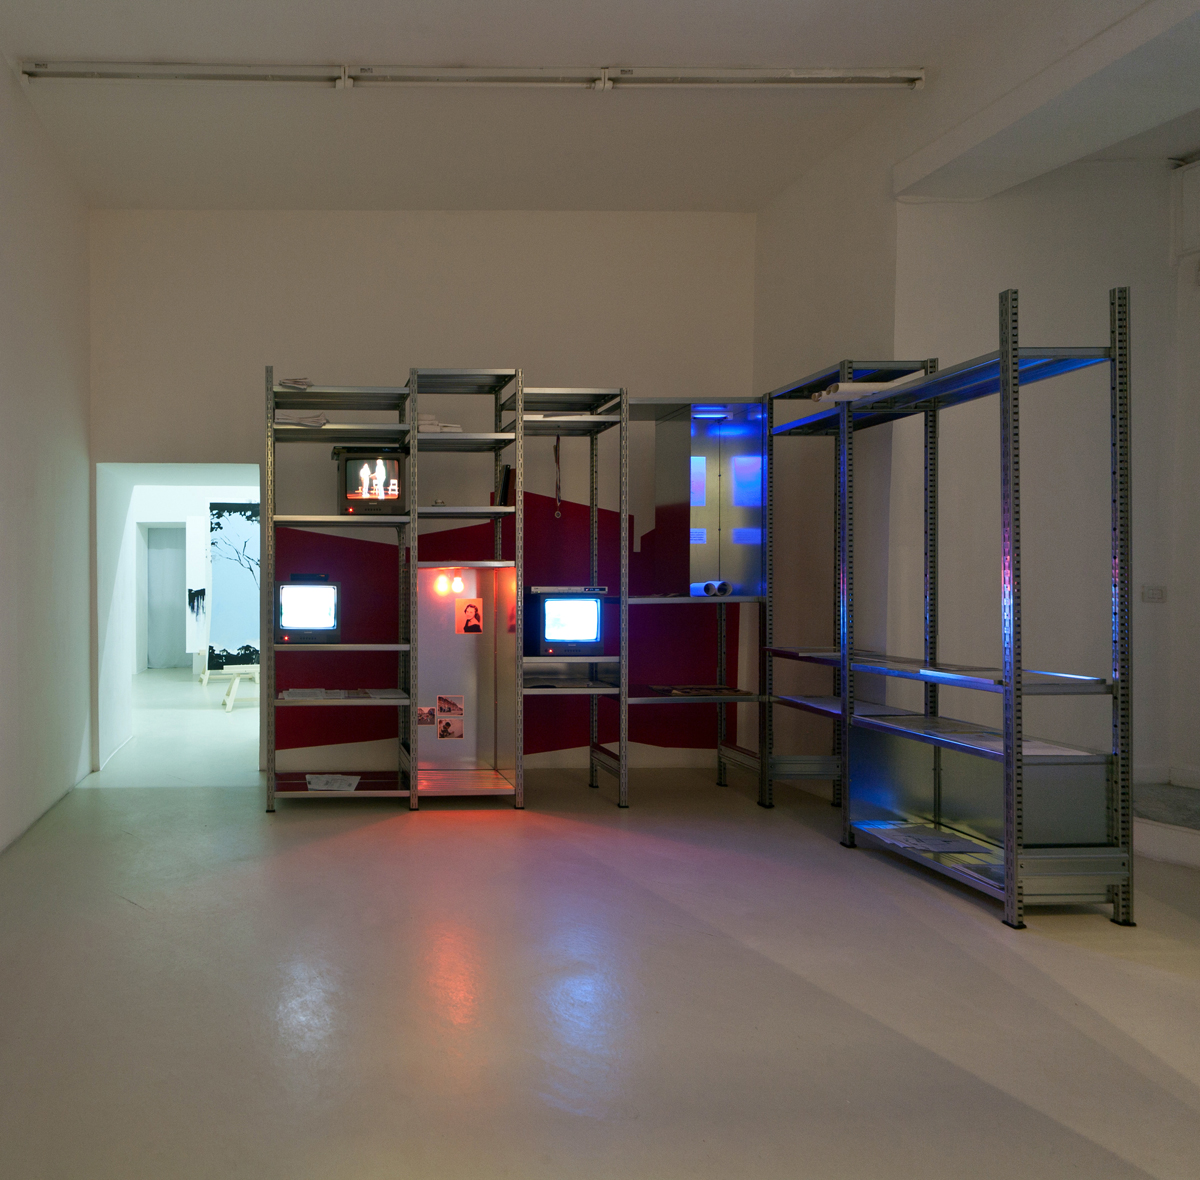 Rosas: The Trilogy, 2012, exhibition view